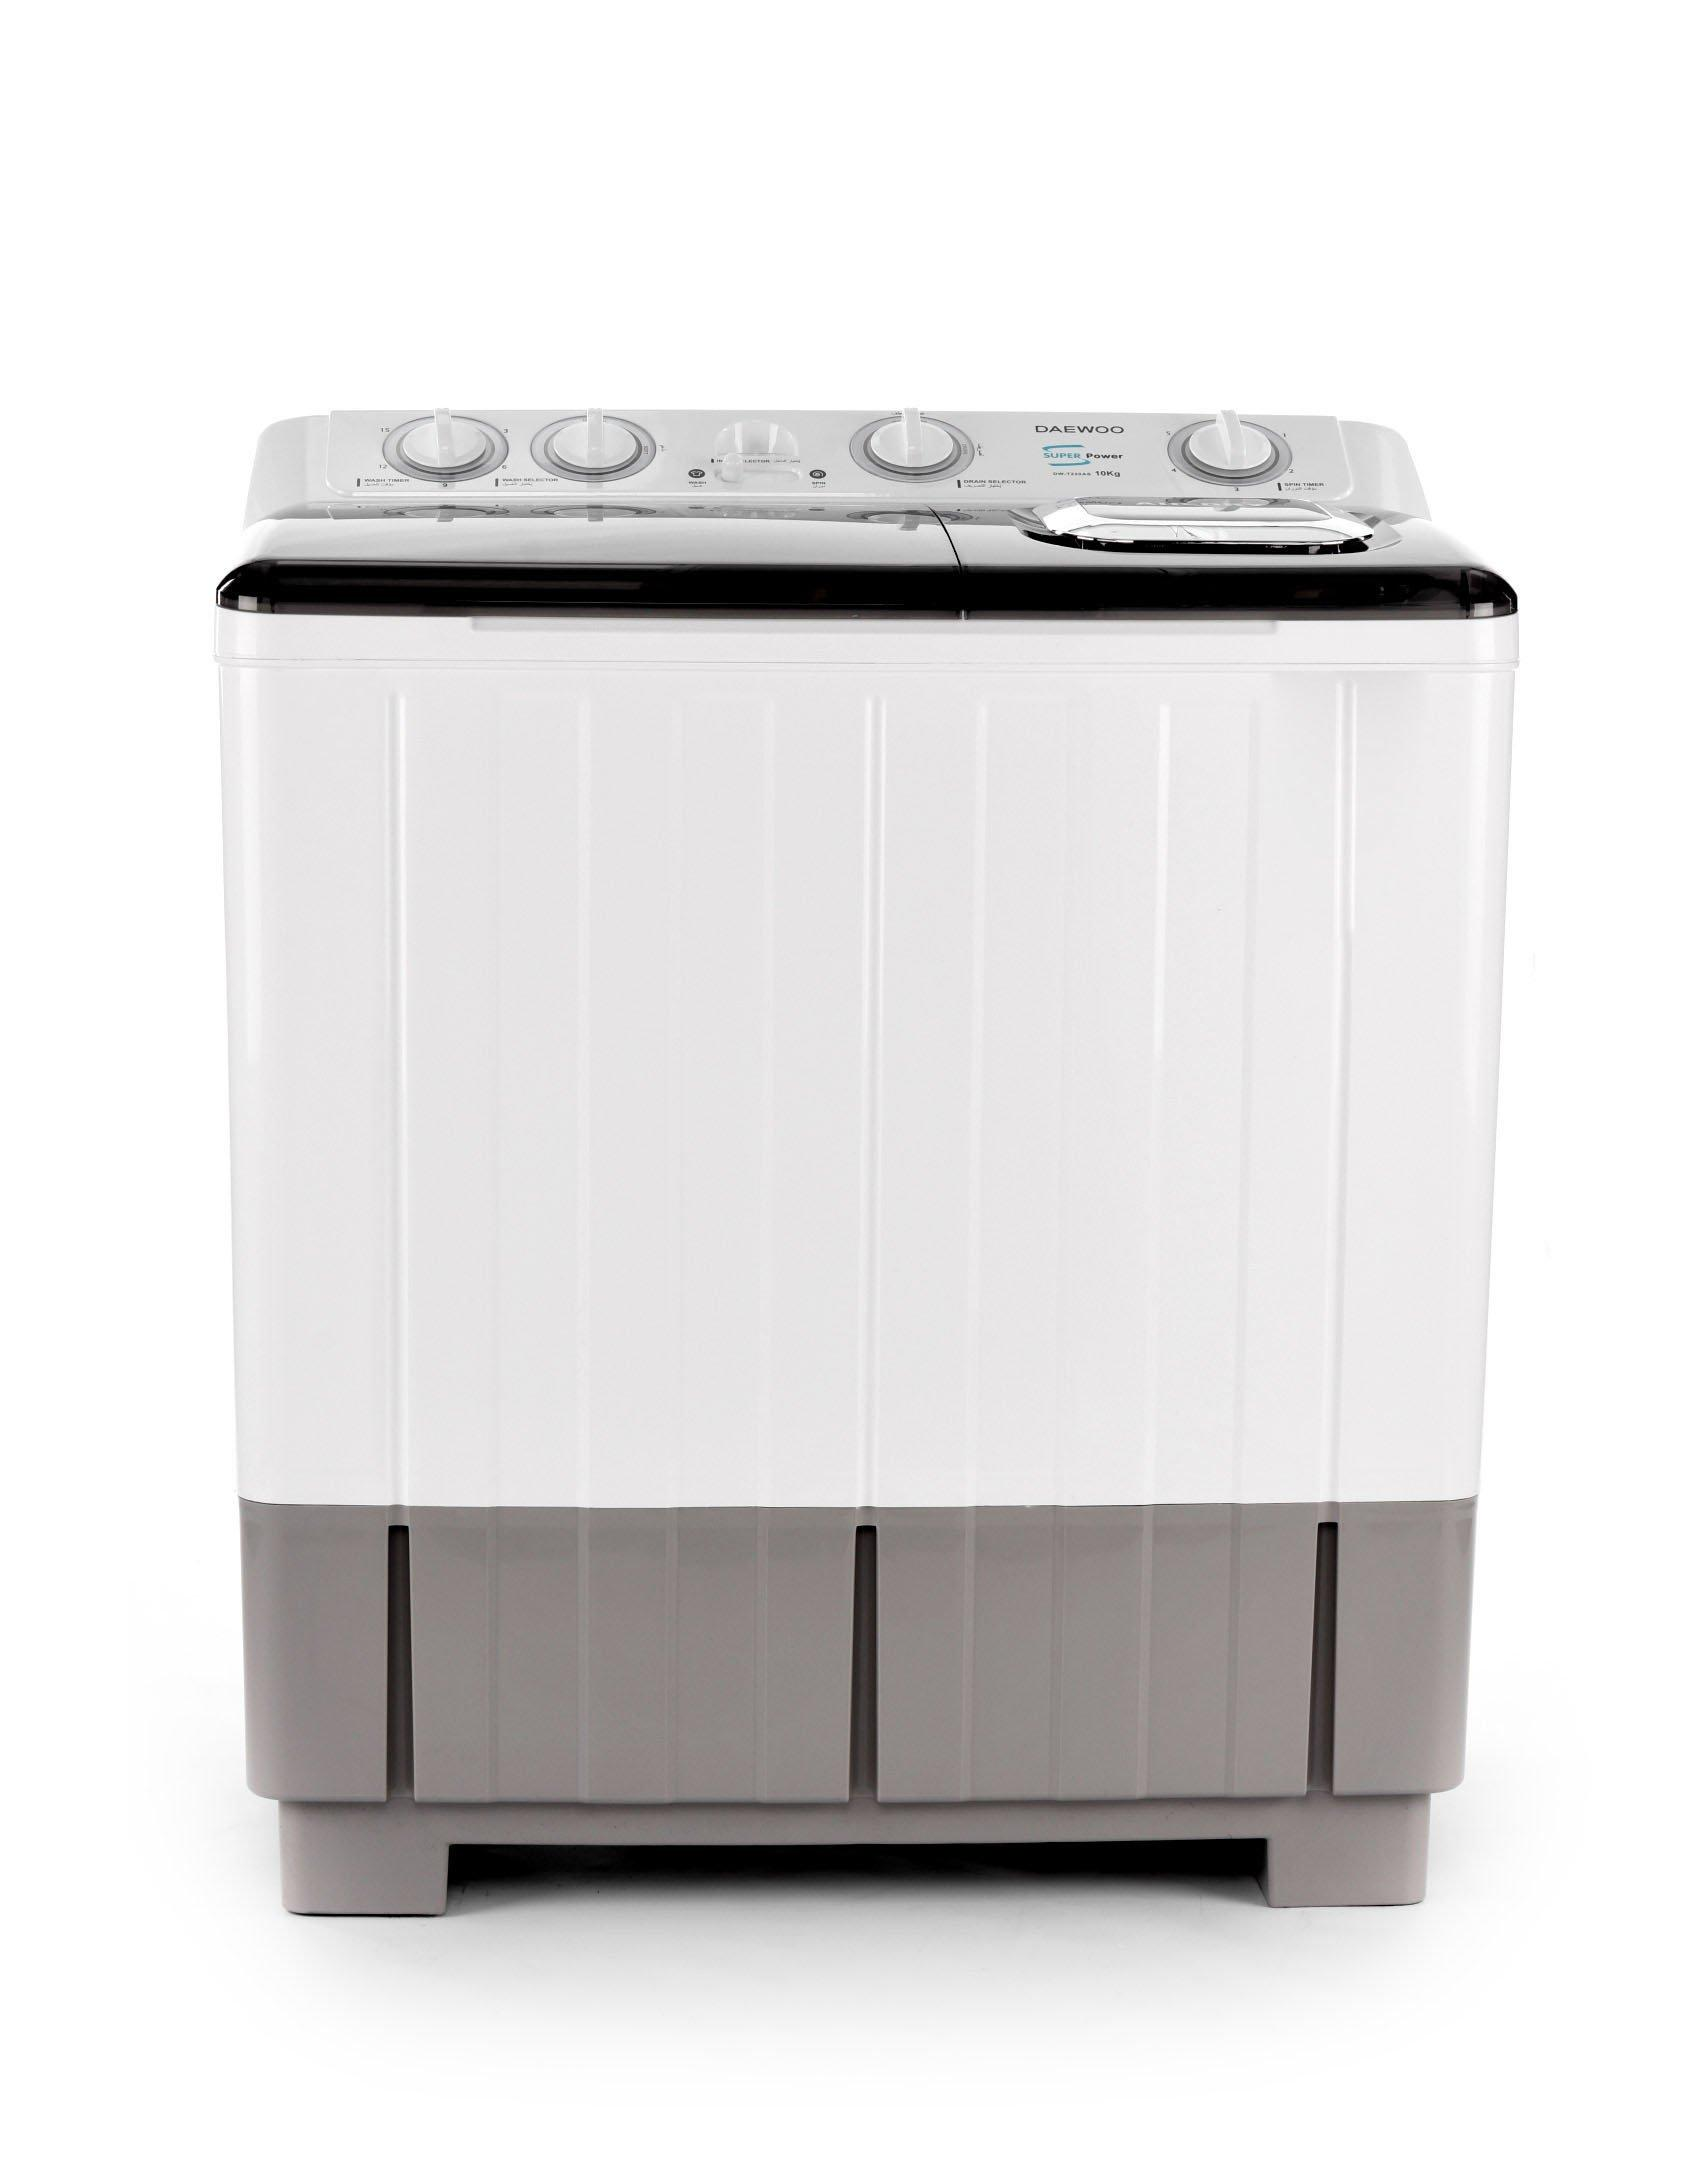 Washing Machines – Best deals and Prices on Washers - eXtra